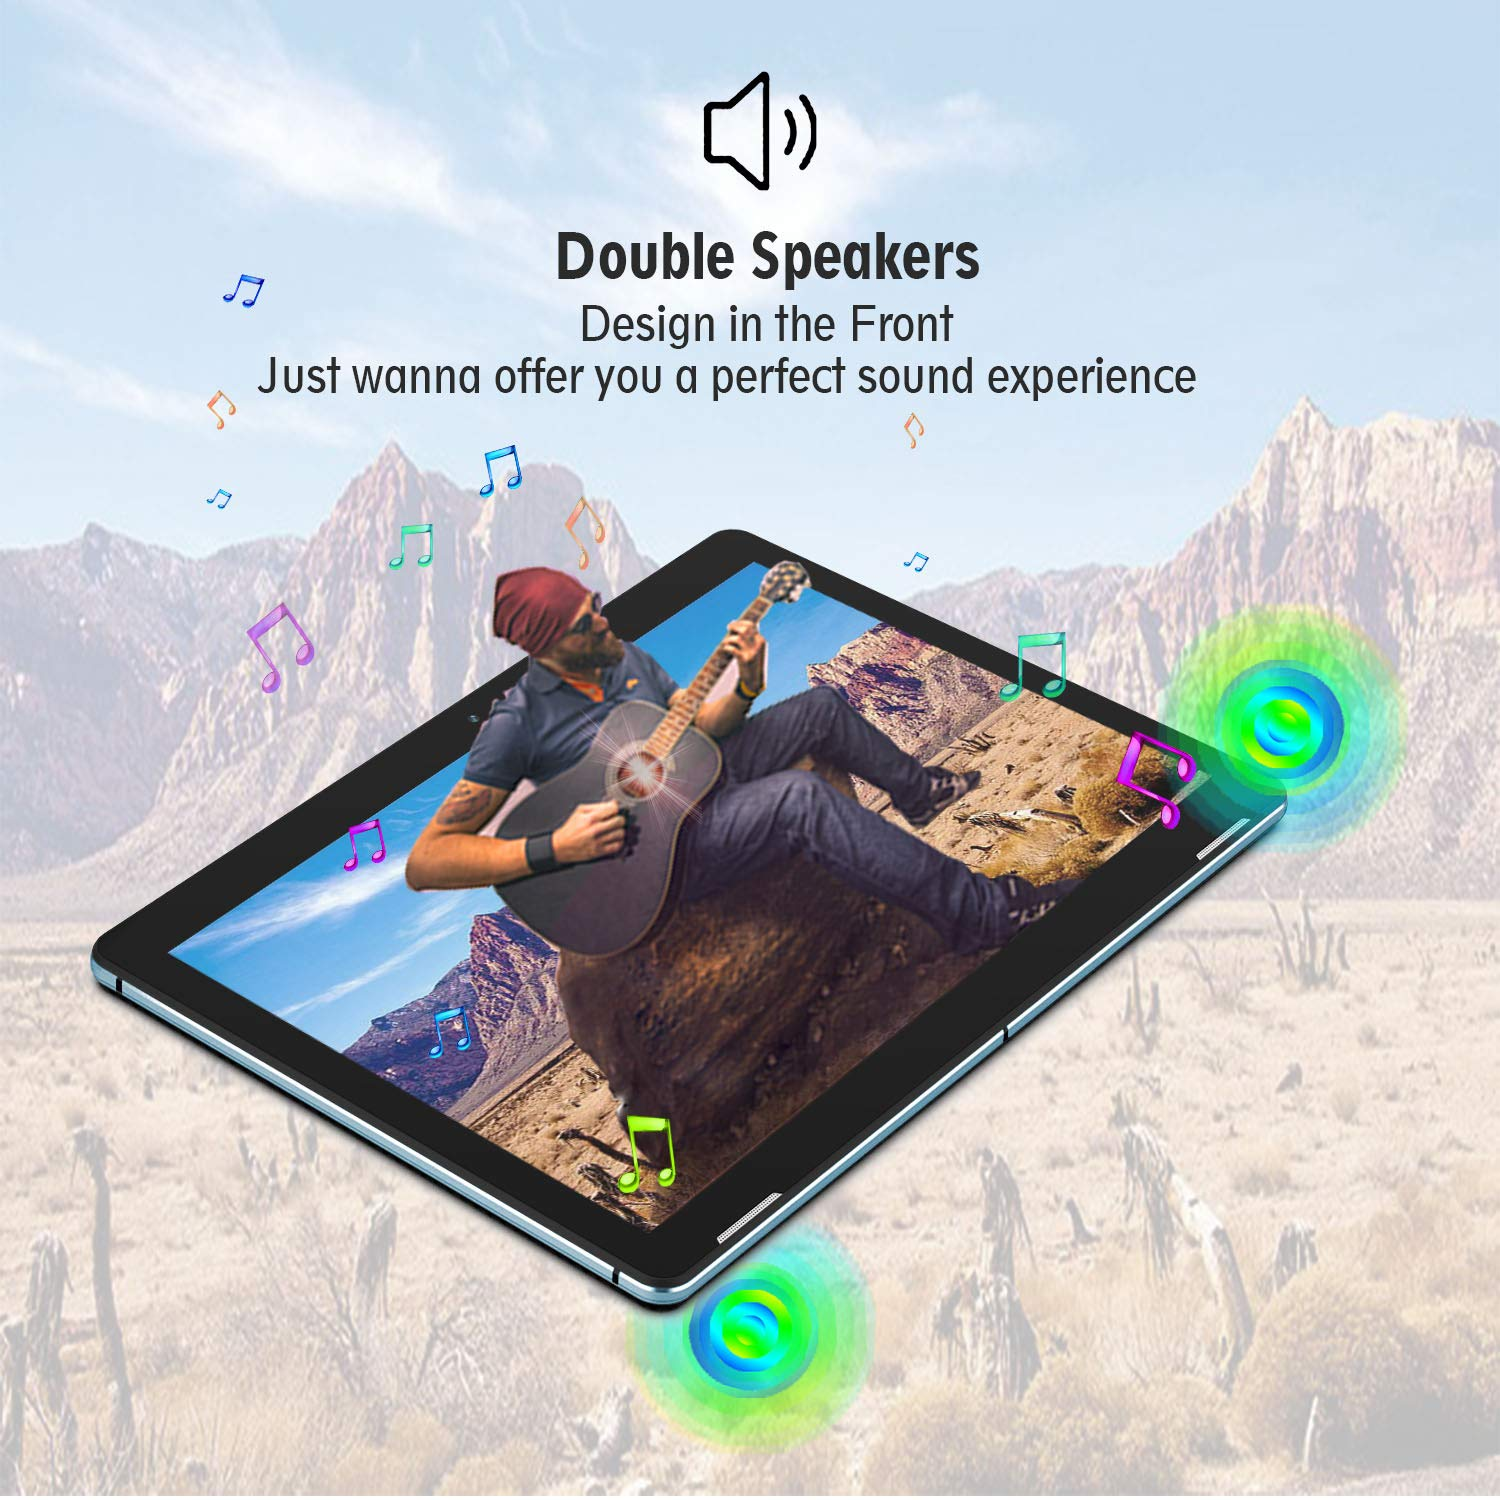 Winnovo T10 Tablet 10 inch Android 9.0 PC, 3GB RAM, 32GB Storage, Metal Frame, Dual Speaker, 5G WiFi, IPS Touchscreen, HDMI, GPS, Support Netflix, Play Store, CNN (Blue)